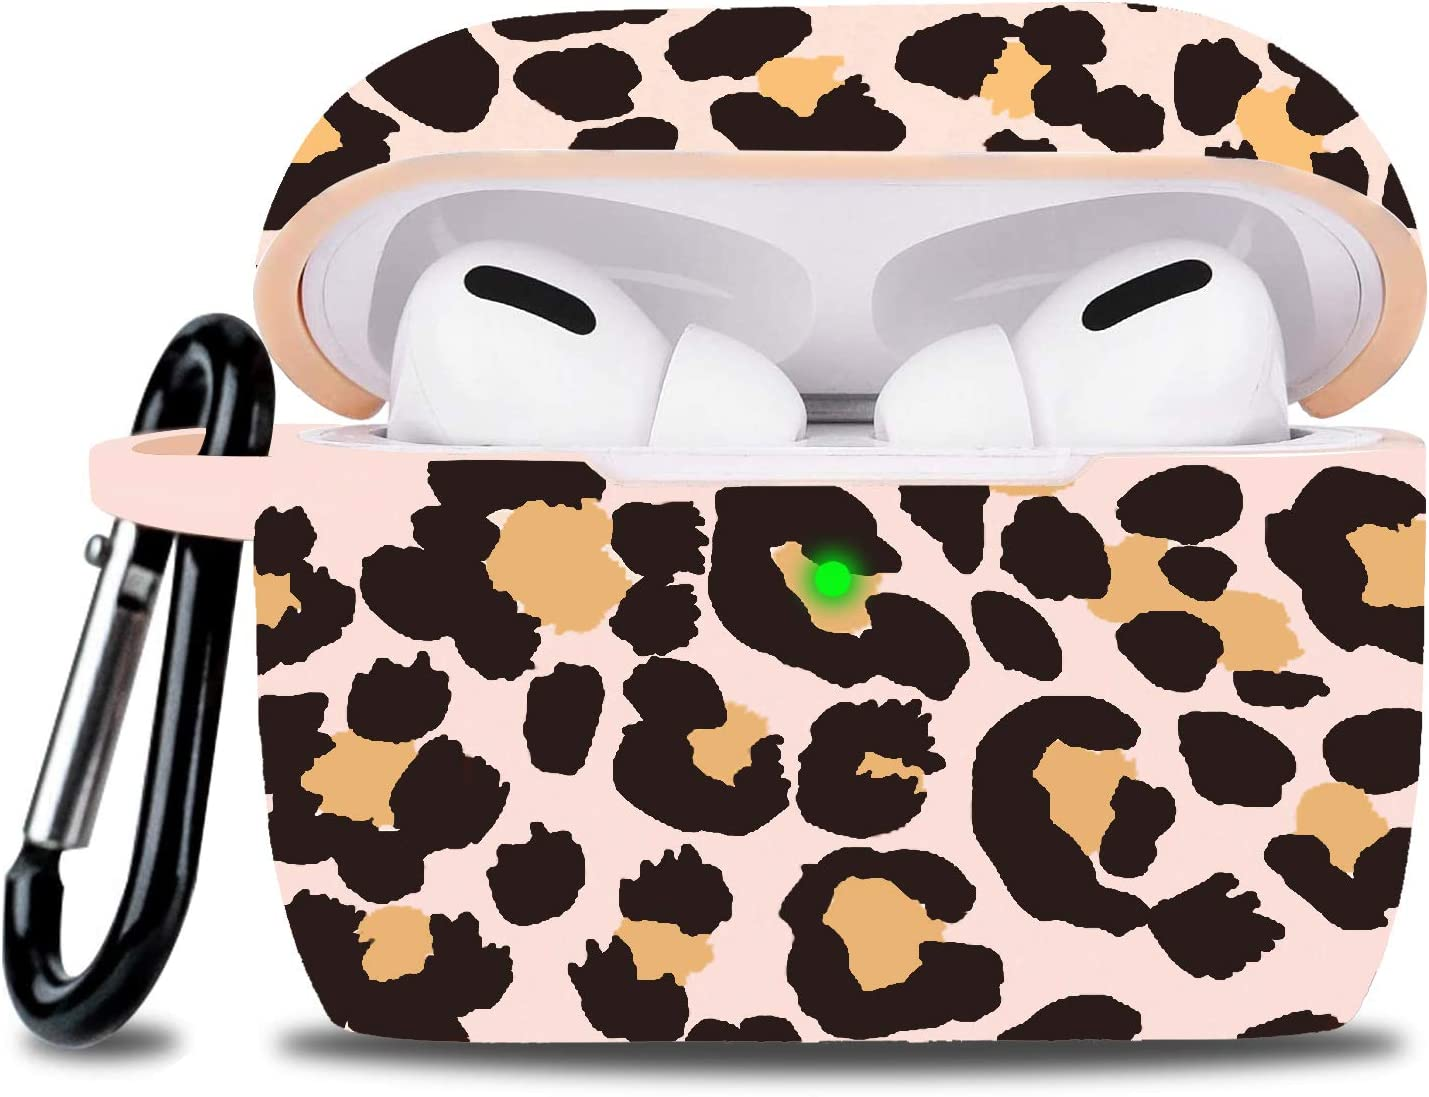 Airpod Pro Case Soft Silicone - LitoDream Case Cover Flexible Skin for Apple AirPods Pro Charging Case Cute Women Girls Protective Skin with Keychain - Leopard